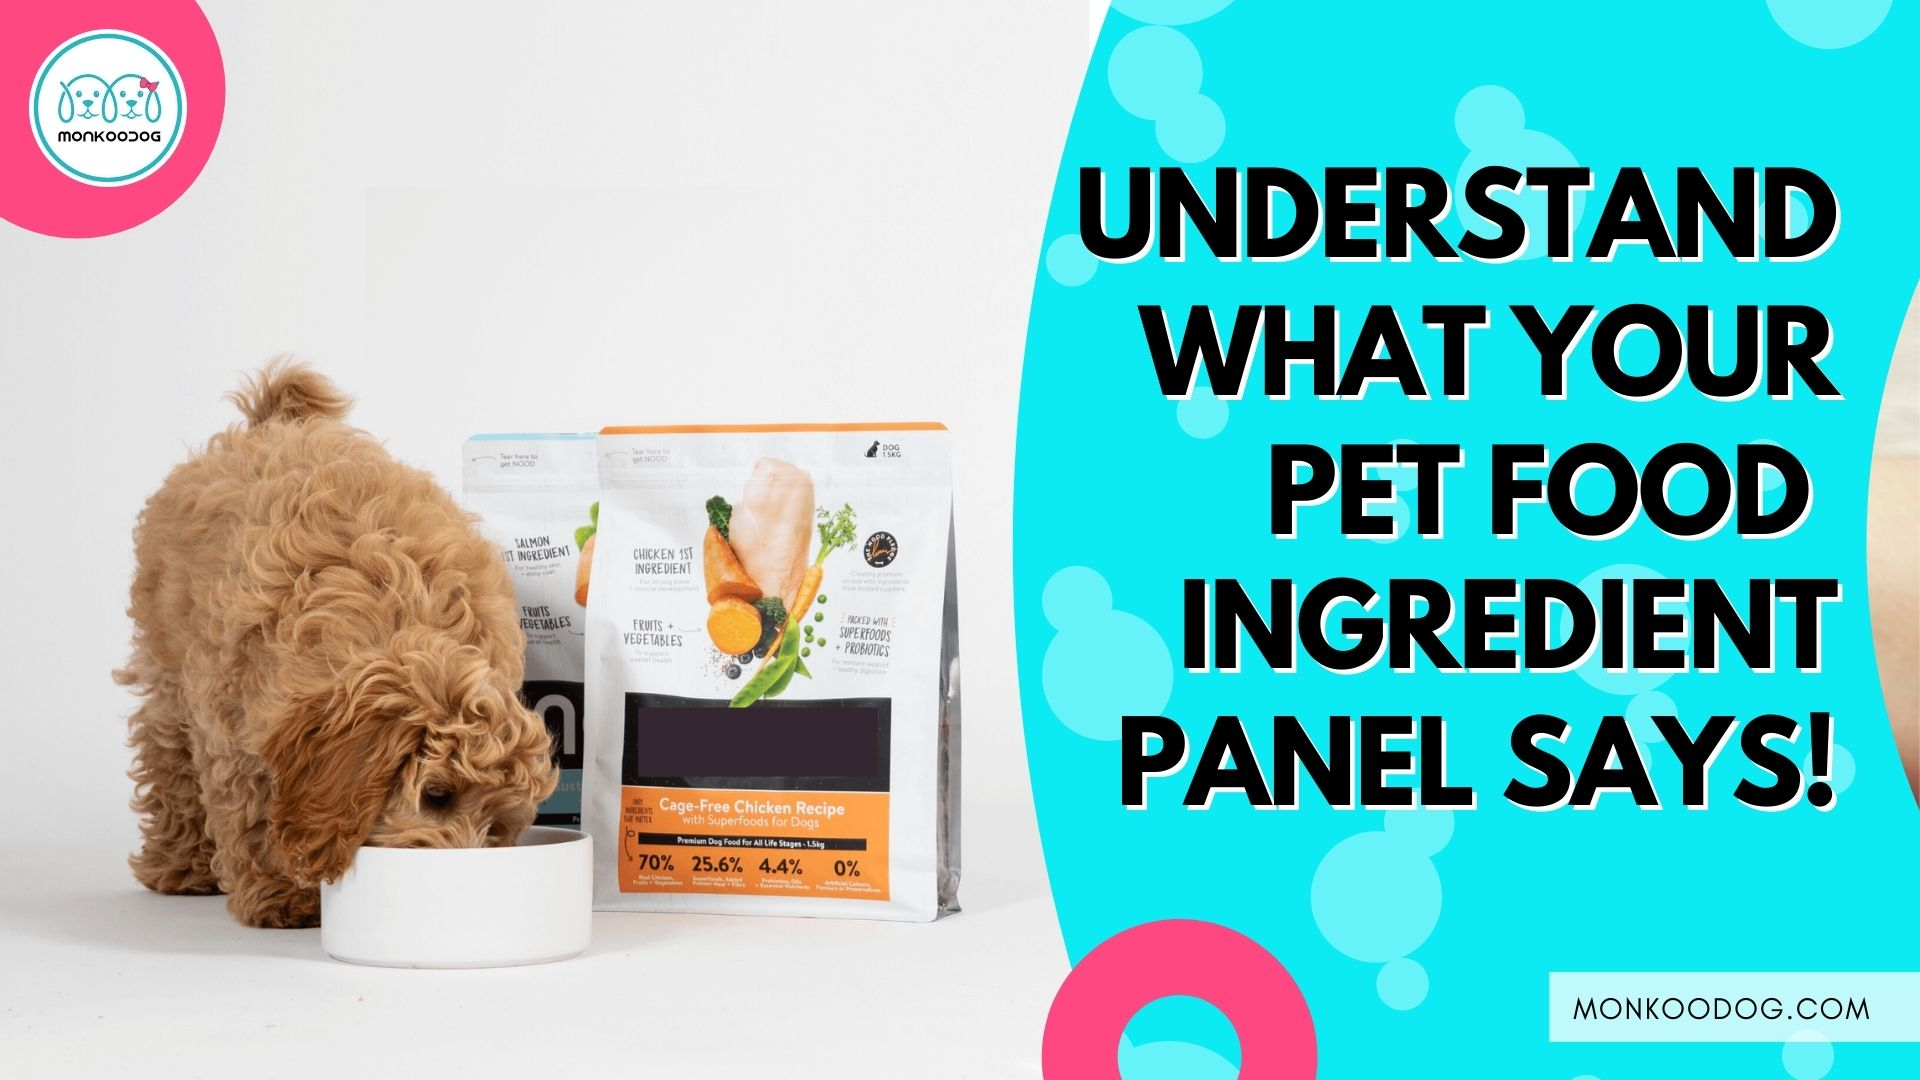 Information about the ingredients in pet food